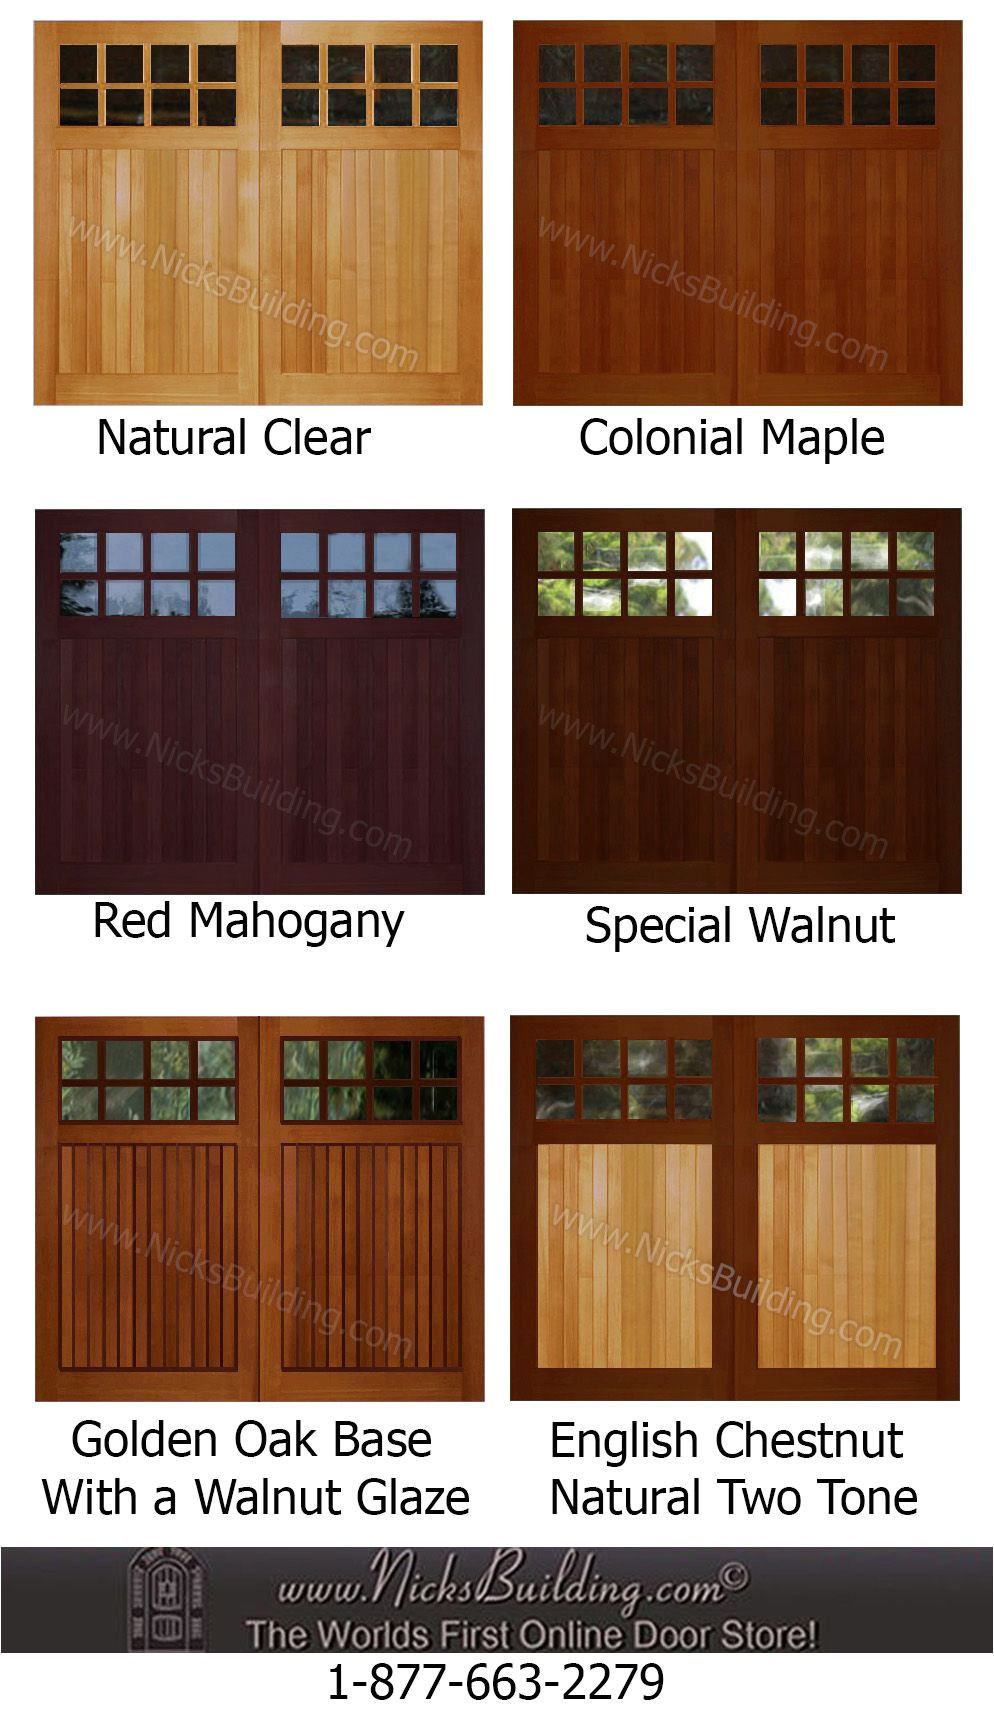 wood overhead garage door stain ideas need help deciding on a stain color for your garage door here are a few stain color ideas to compare